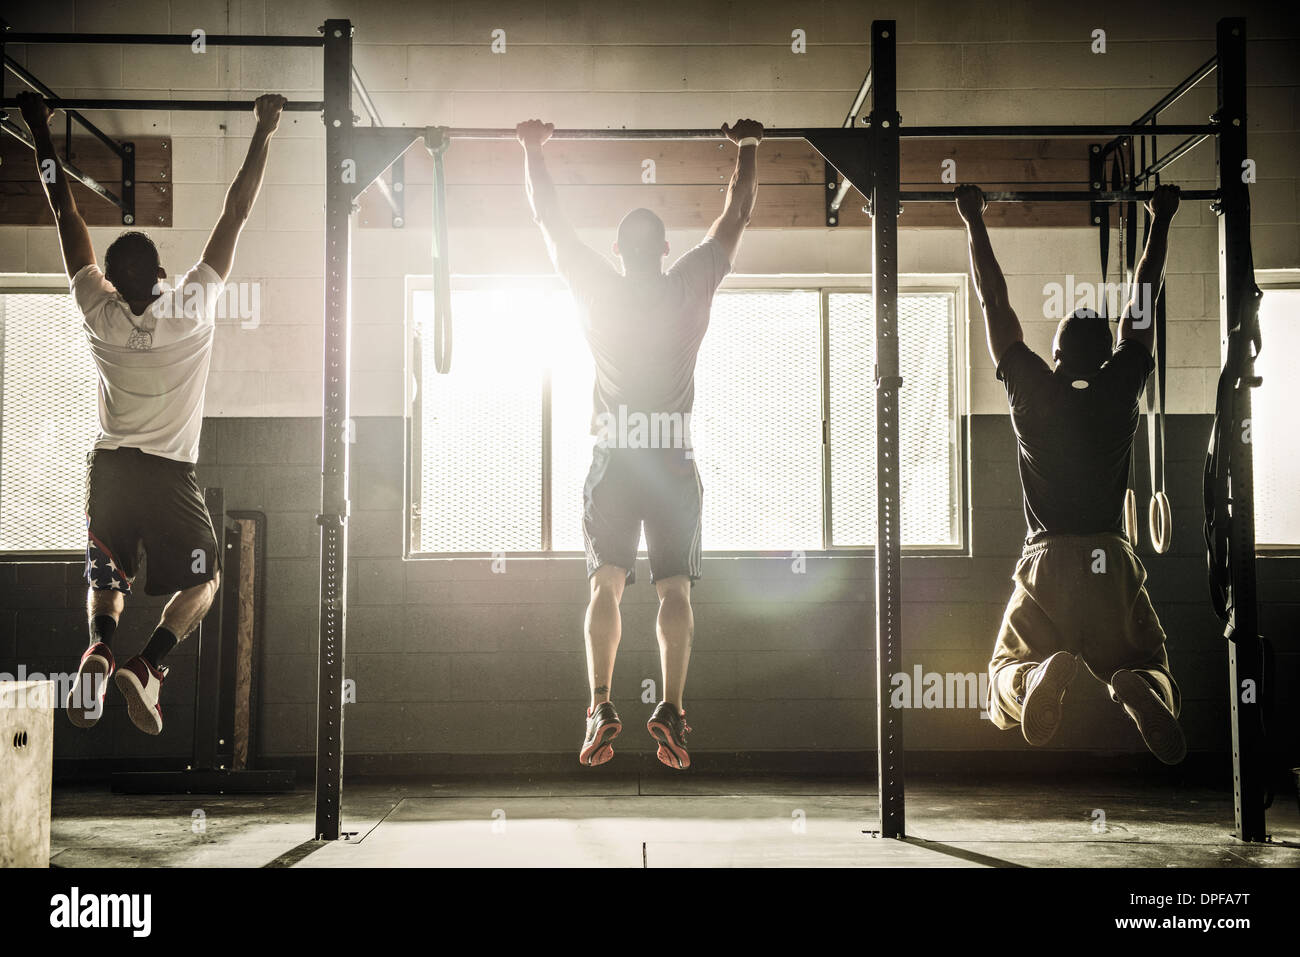 Three men doing pull ups on exercise bar in gymnasium - Stock Image